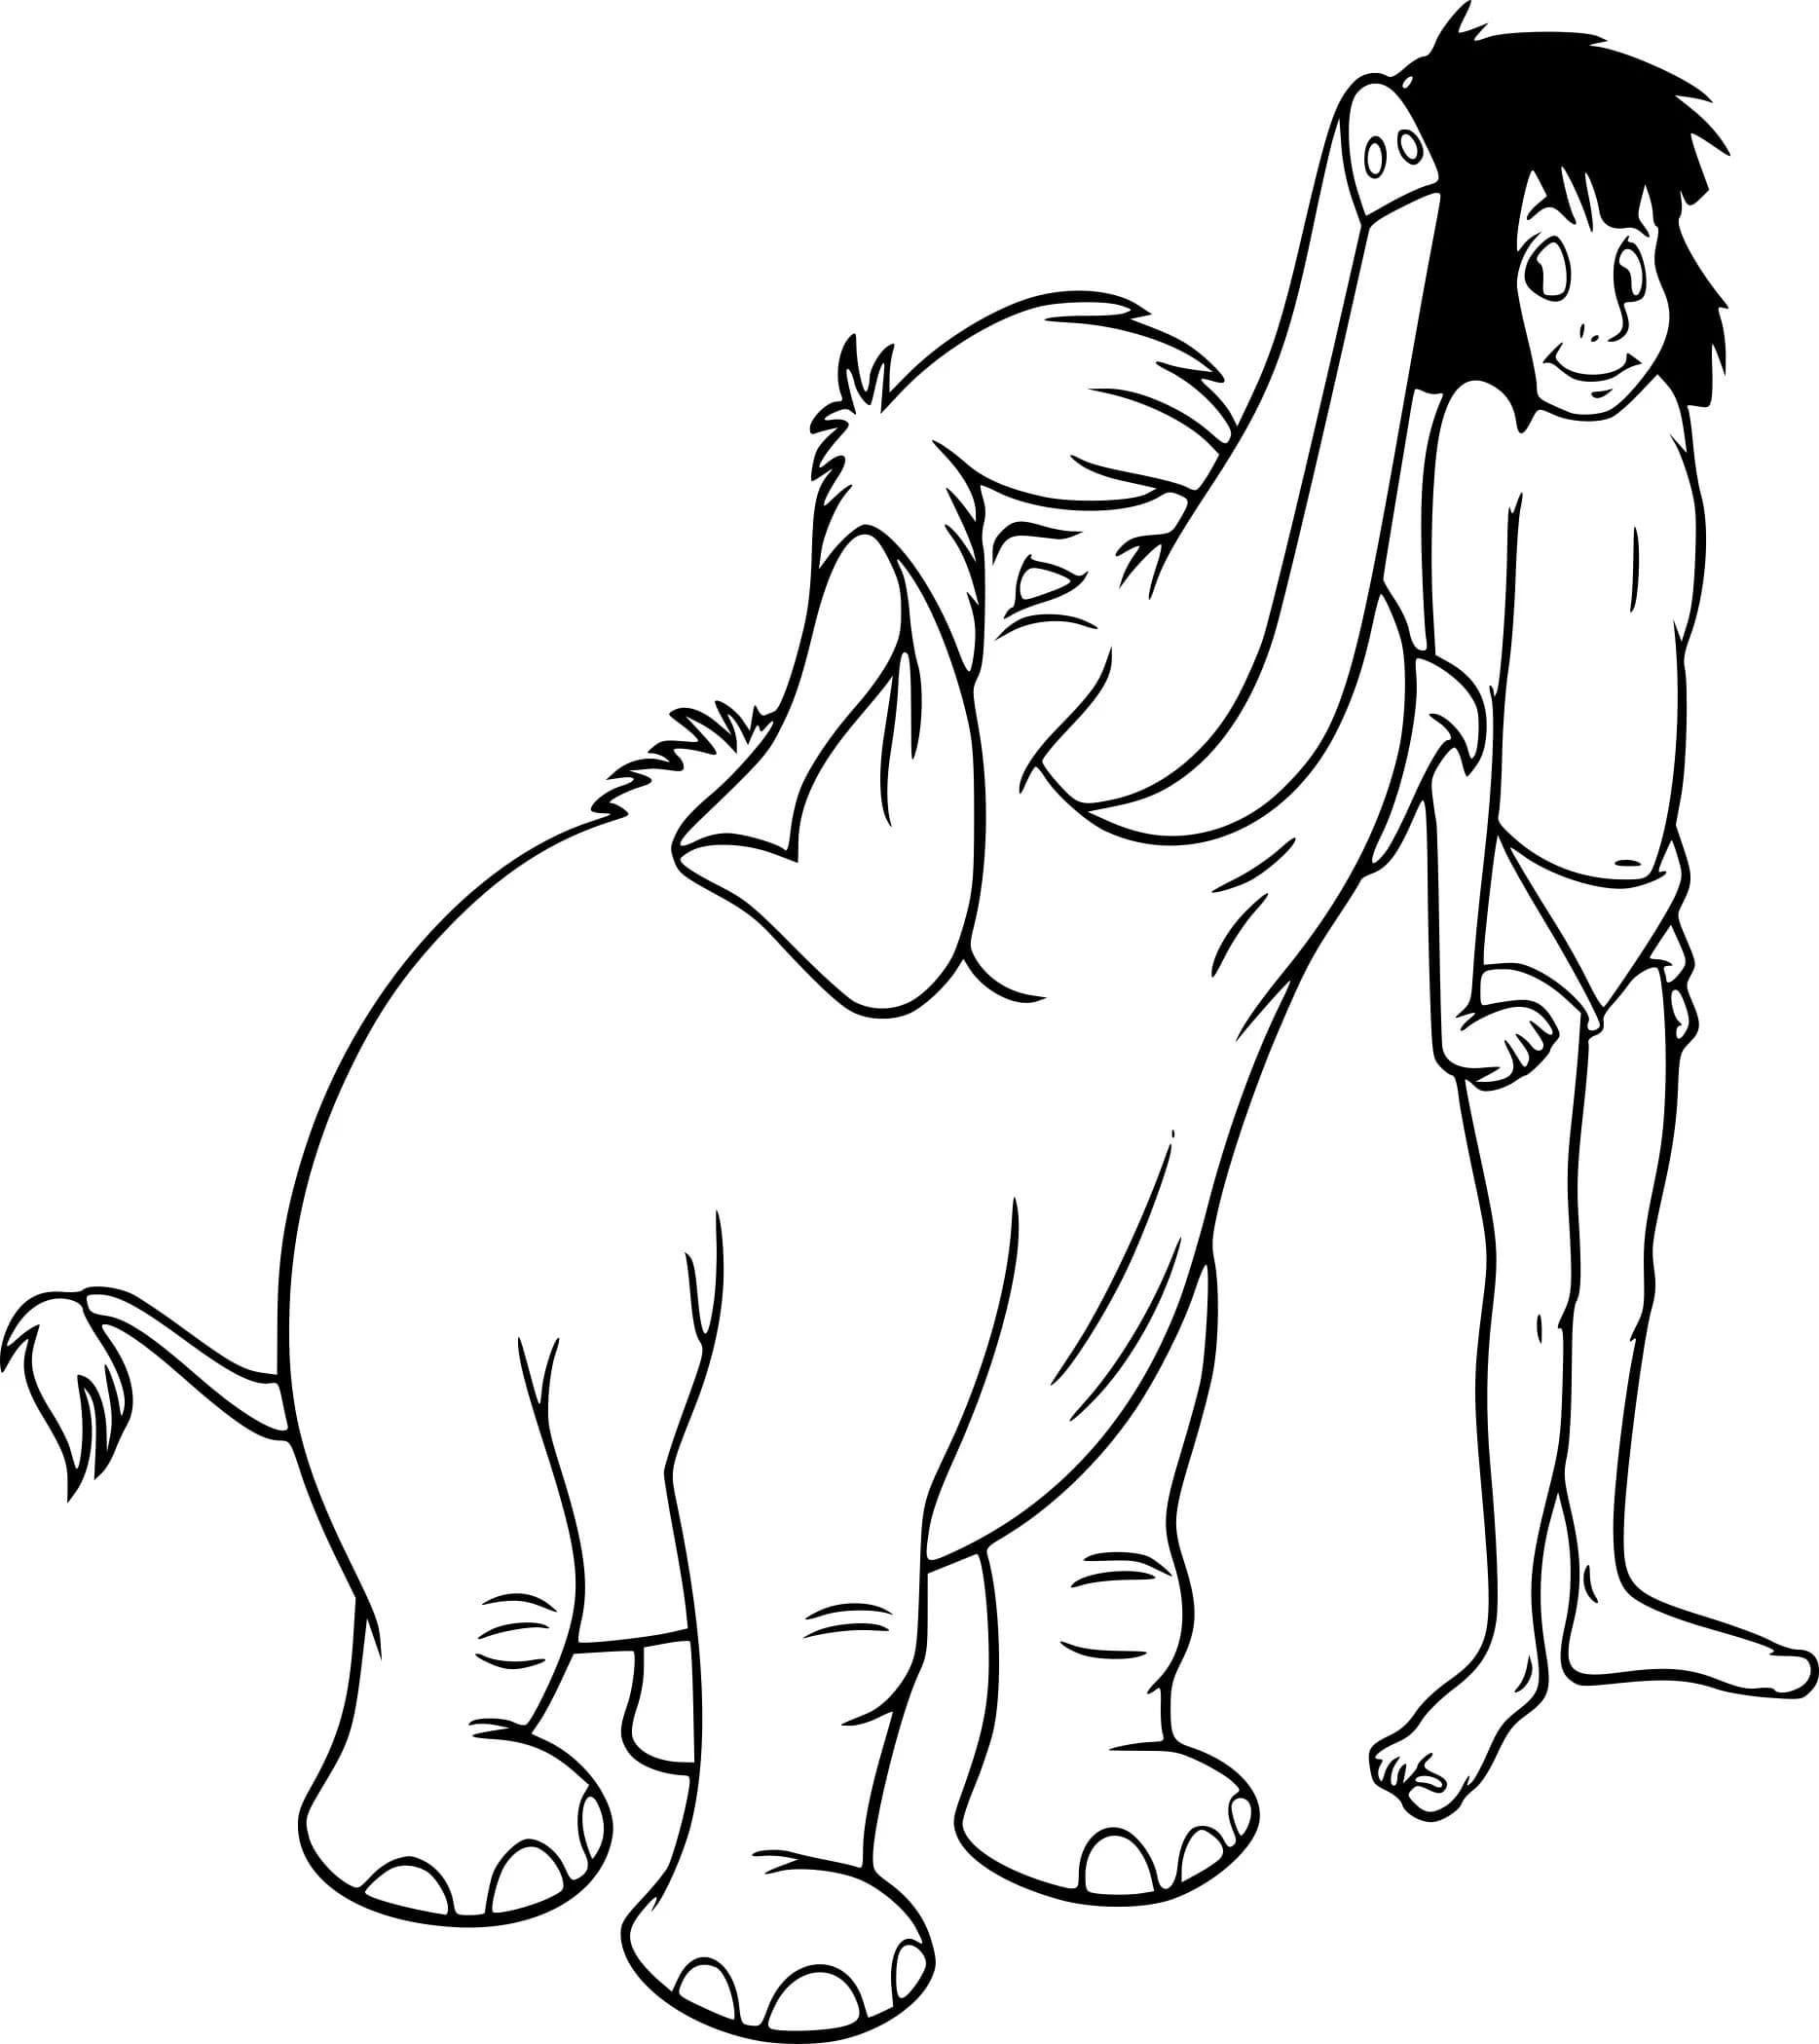 jungle book coloring pages jungle book coloring pages top 100 images free printable pages book jungle coloring